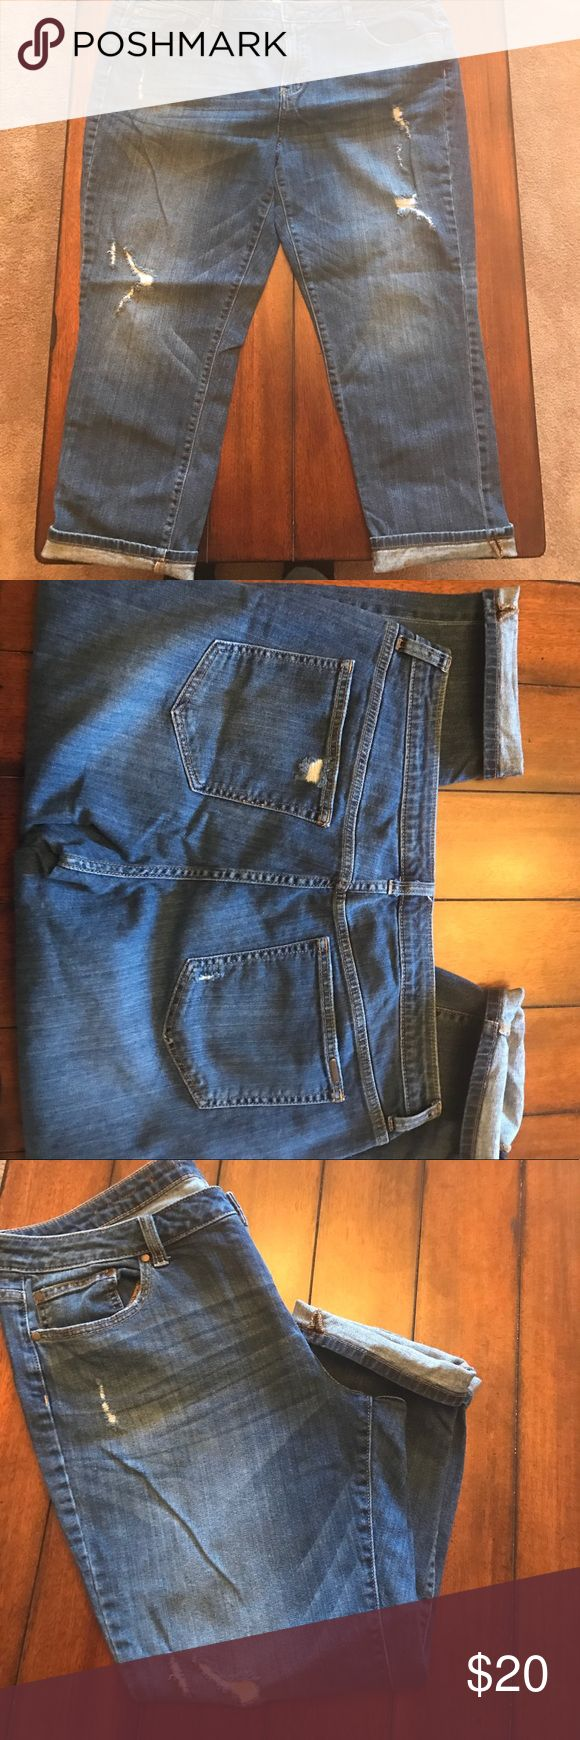 Jennifer Lopez Slim Boyfriend Jeans Super Cute Boyfriend Jeans in a medium wash with distressing on the legs and back pockets. No stains from a smoke free home. In excellent condition. Jennifer Lopez Jeans Ankle & Cropped